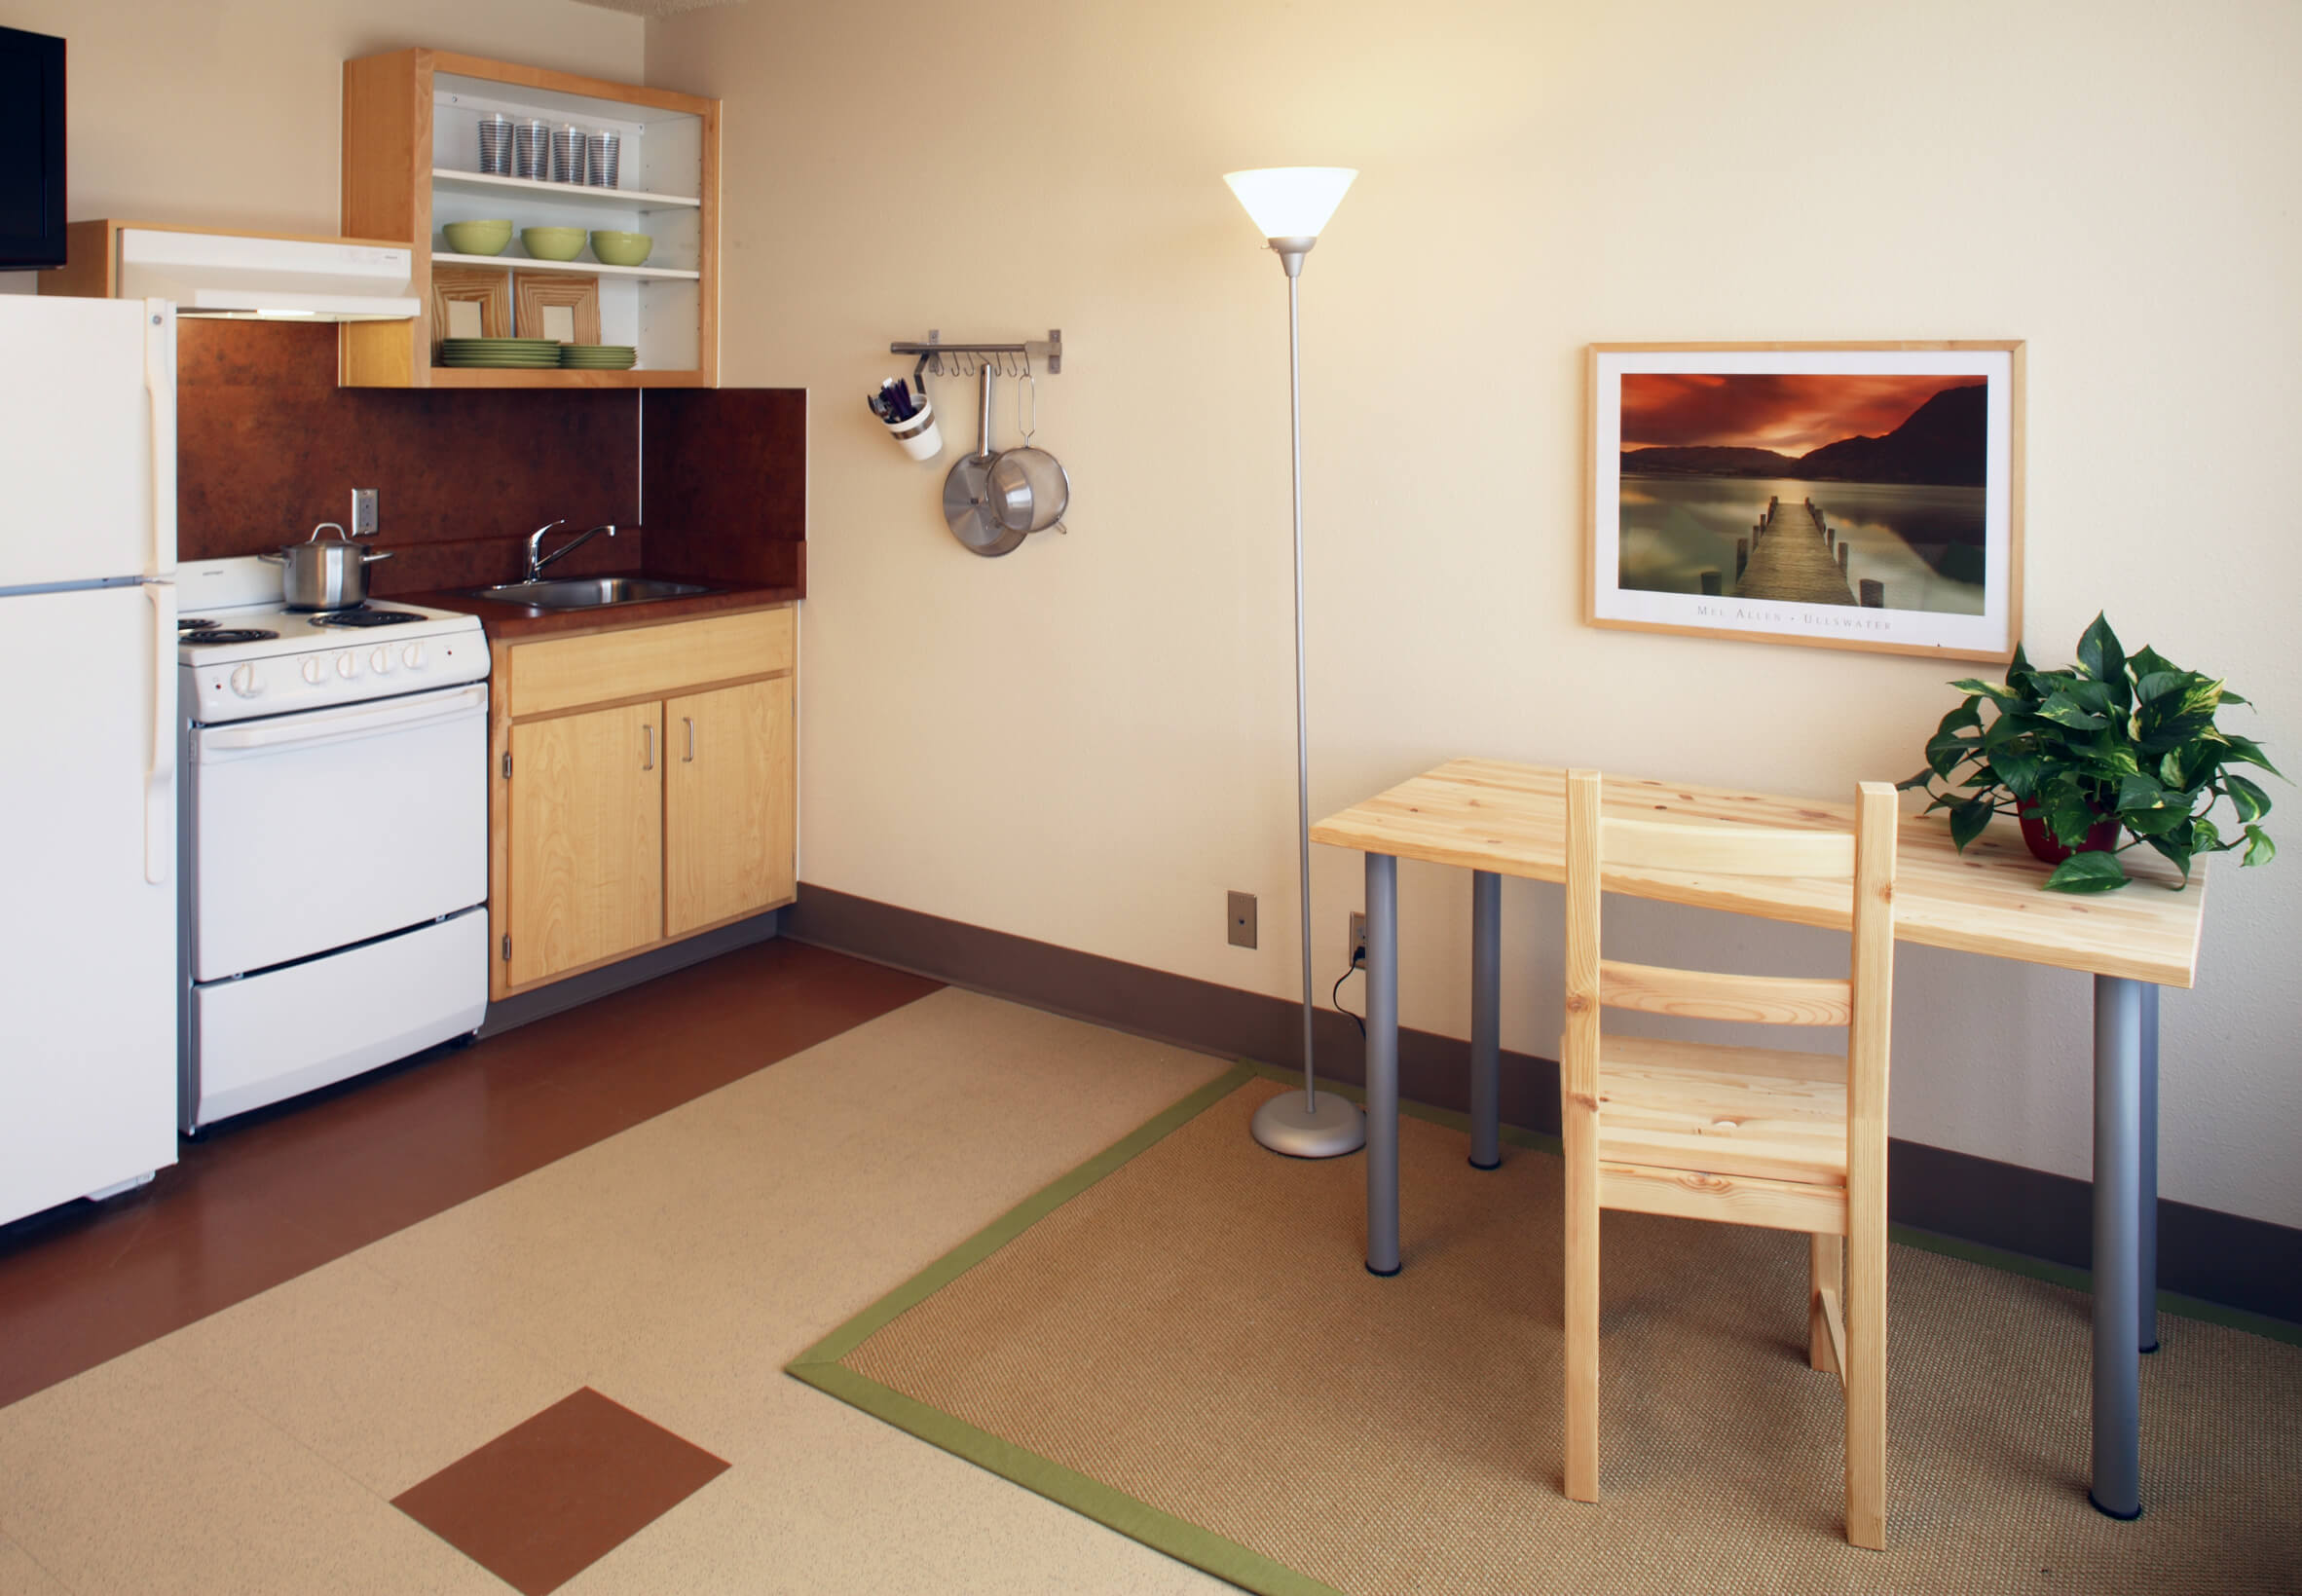 Interior of single apartment in Madrona Studios showing kitchen and dinning table